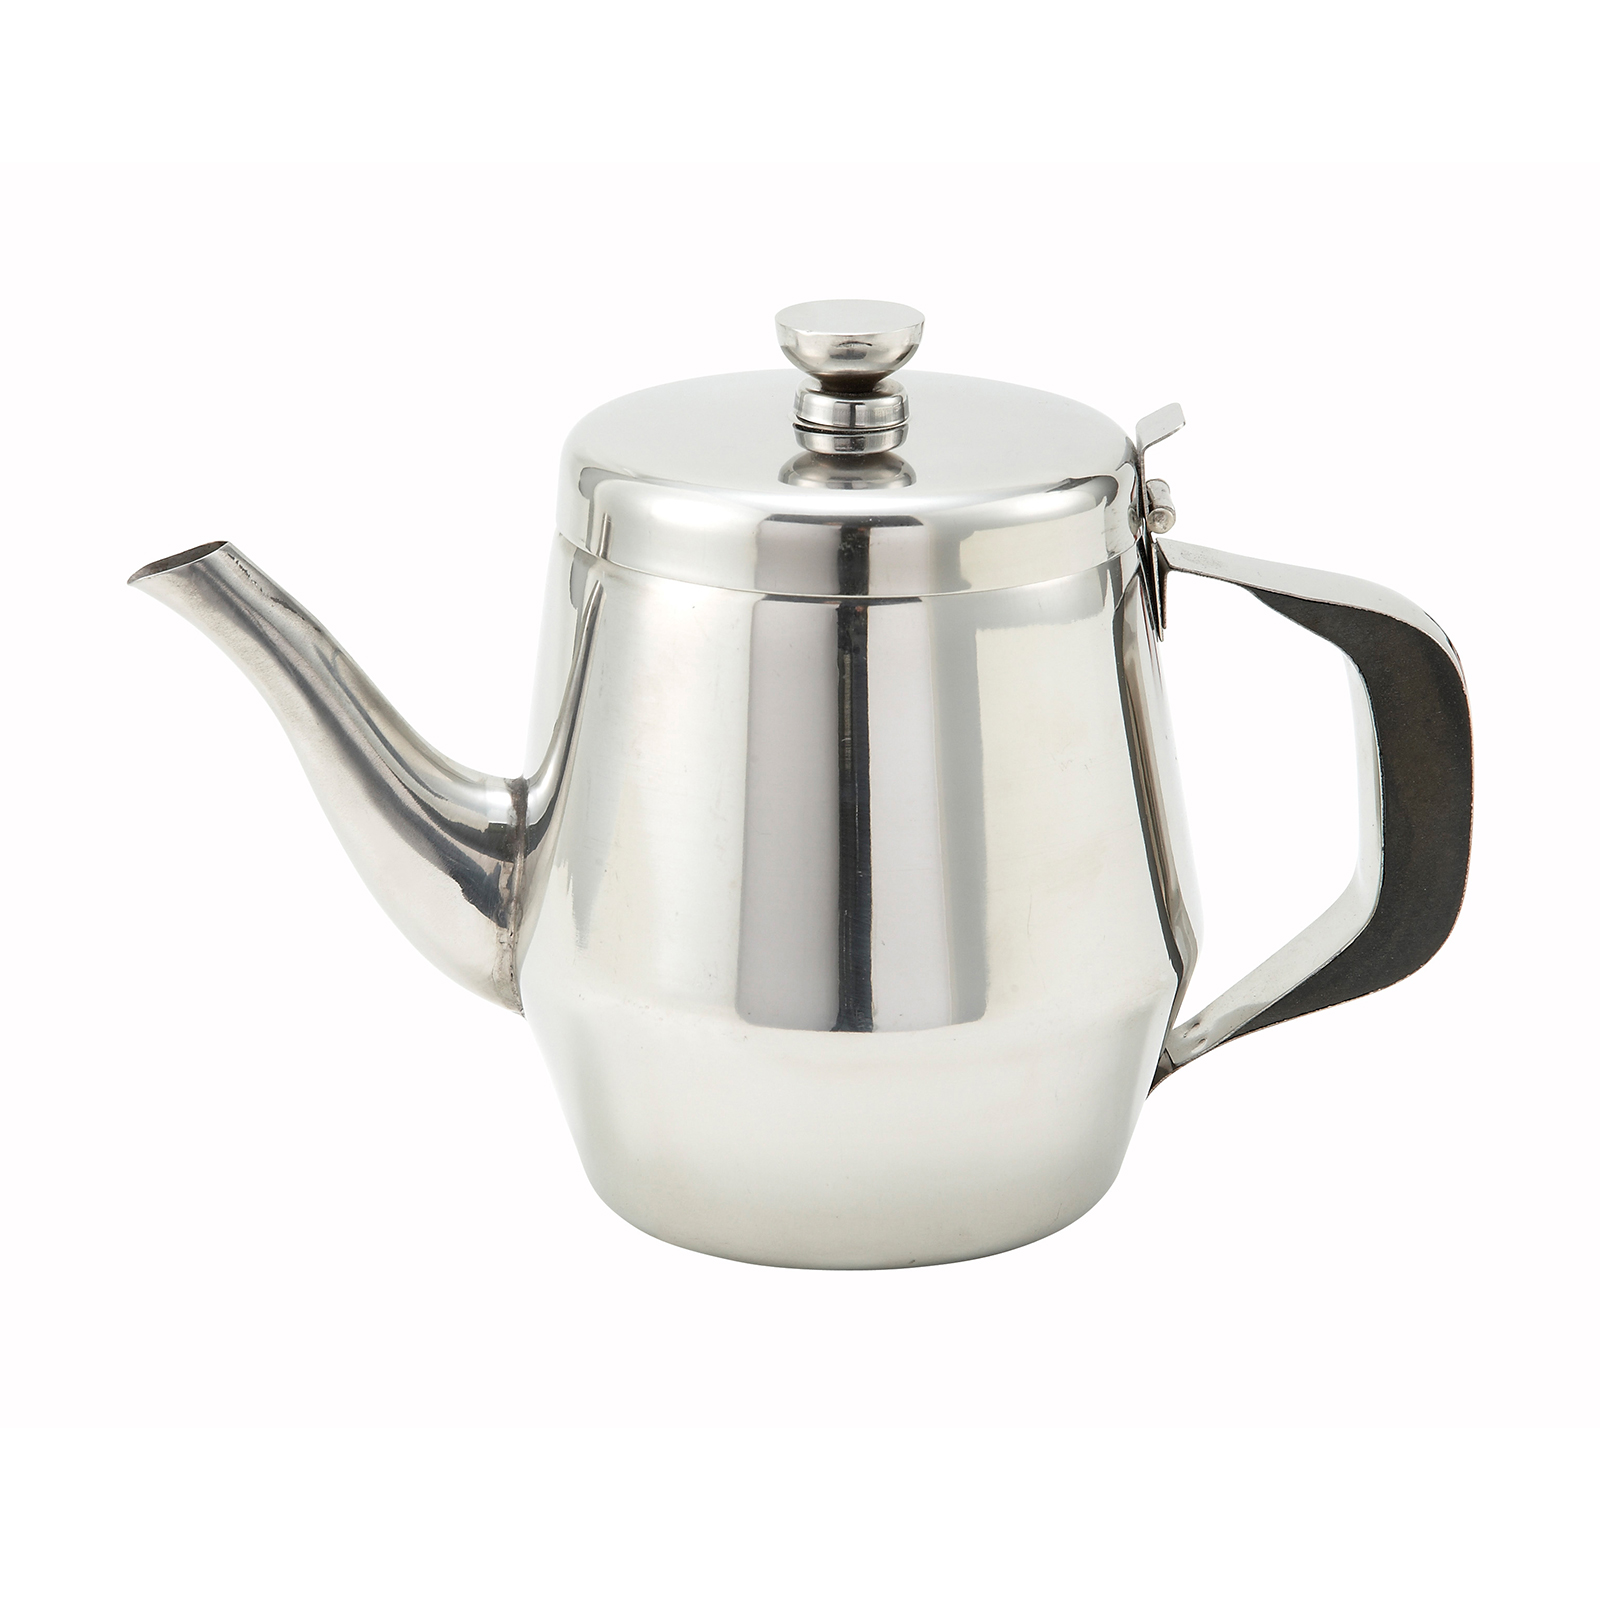 Winco JB2932 coffee pot/teapot, metal